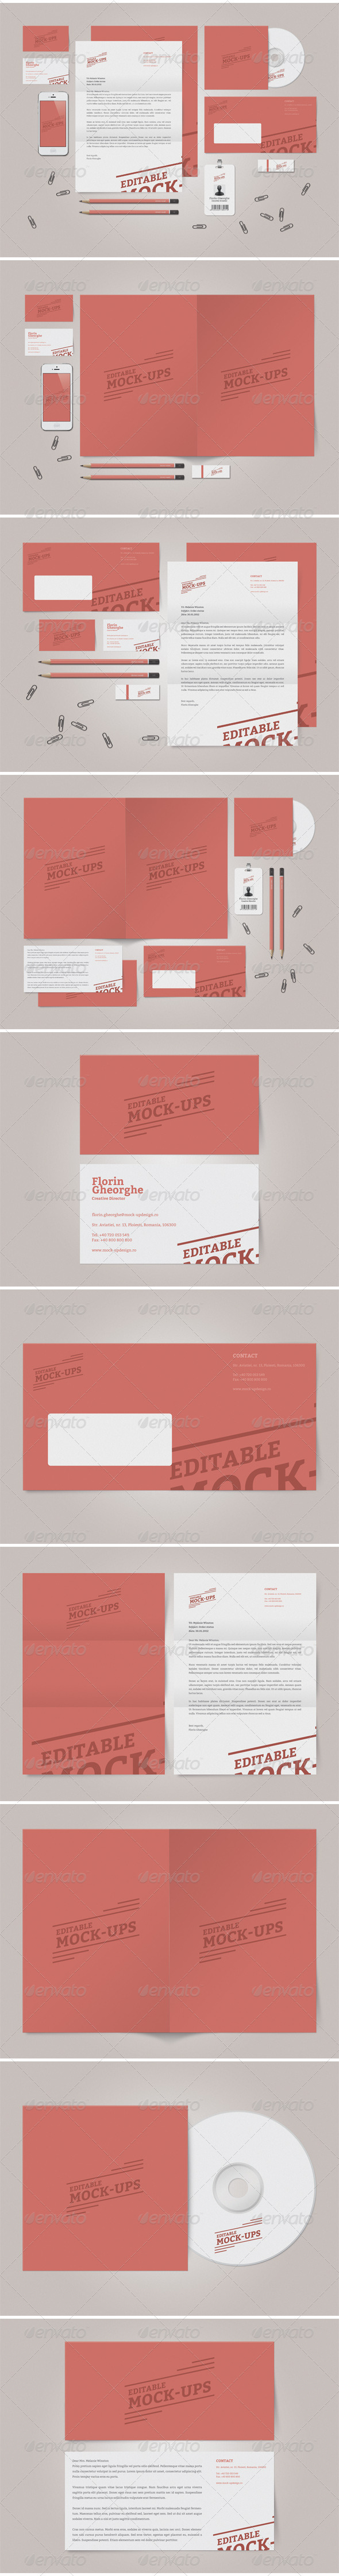 GraphicRiver Simple Stationery Mock-Up 3929758